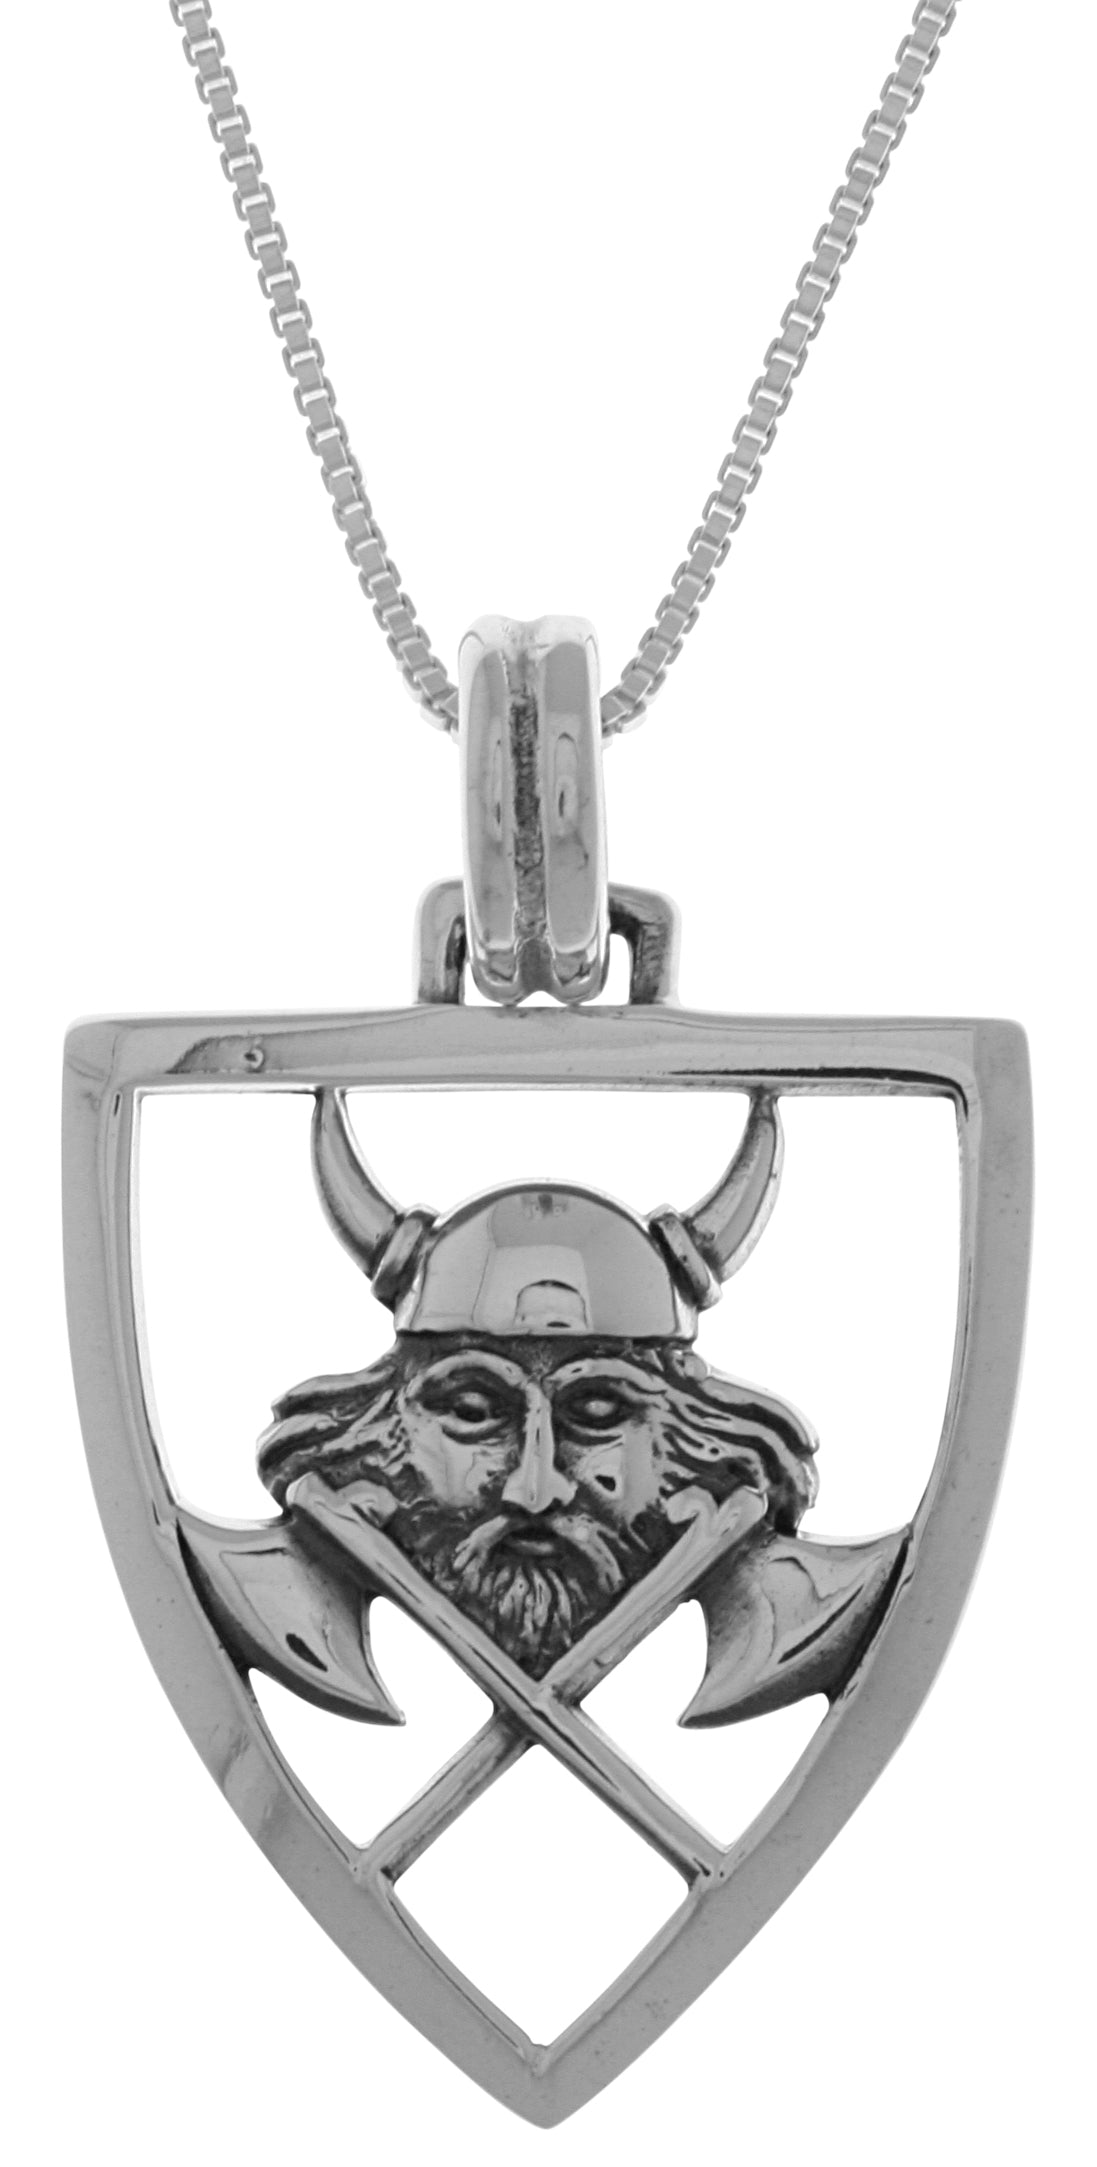 Jewelry Trends Sterling Silver Viking Warrior Battle Axe Shield Pendant on 18 Inch Box Chain Necklace